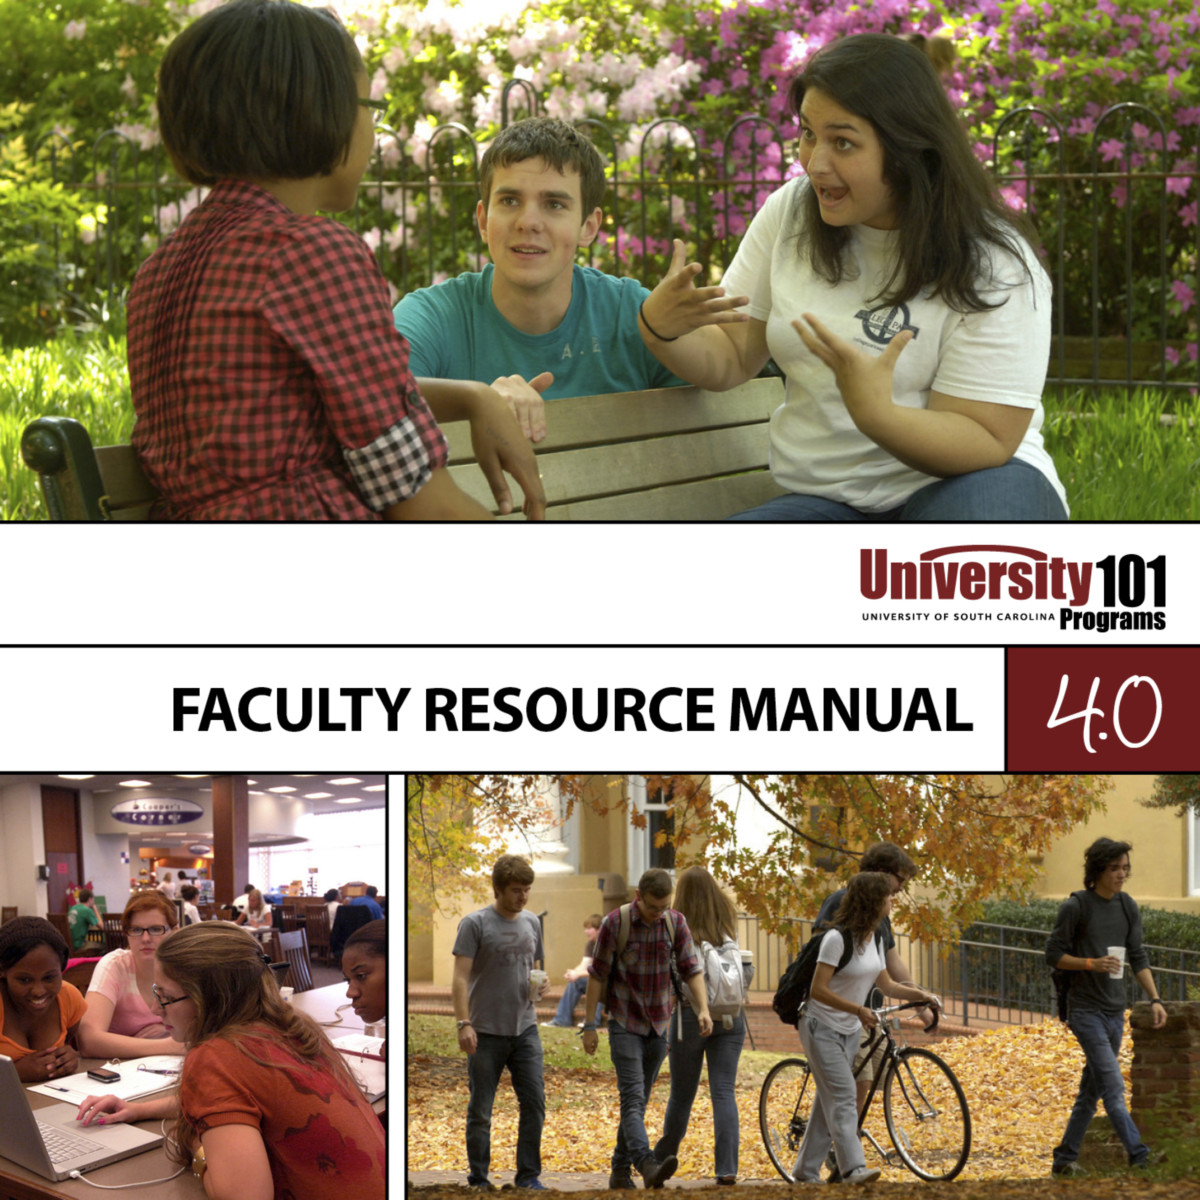 Faculty Resource Manual 4.0